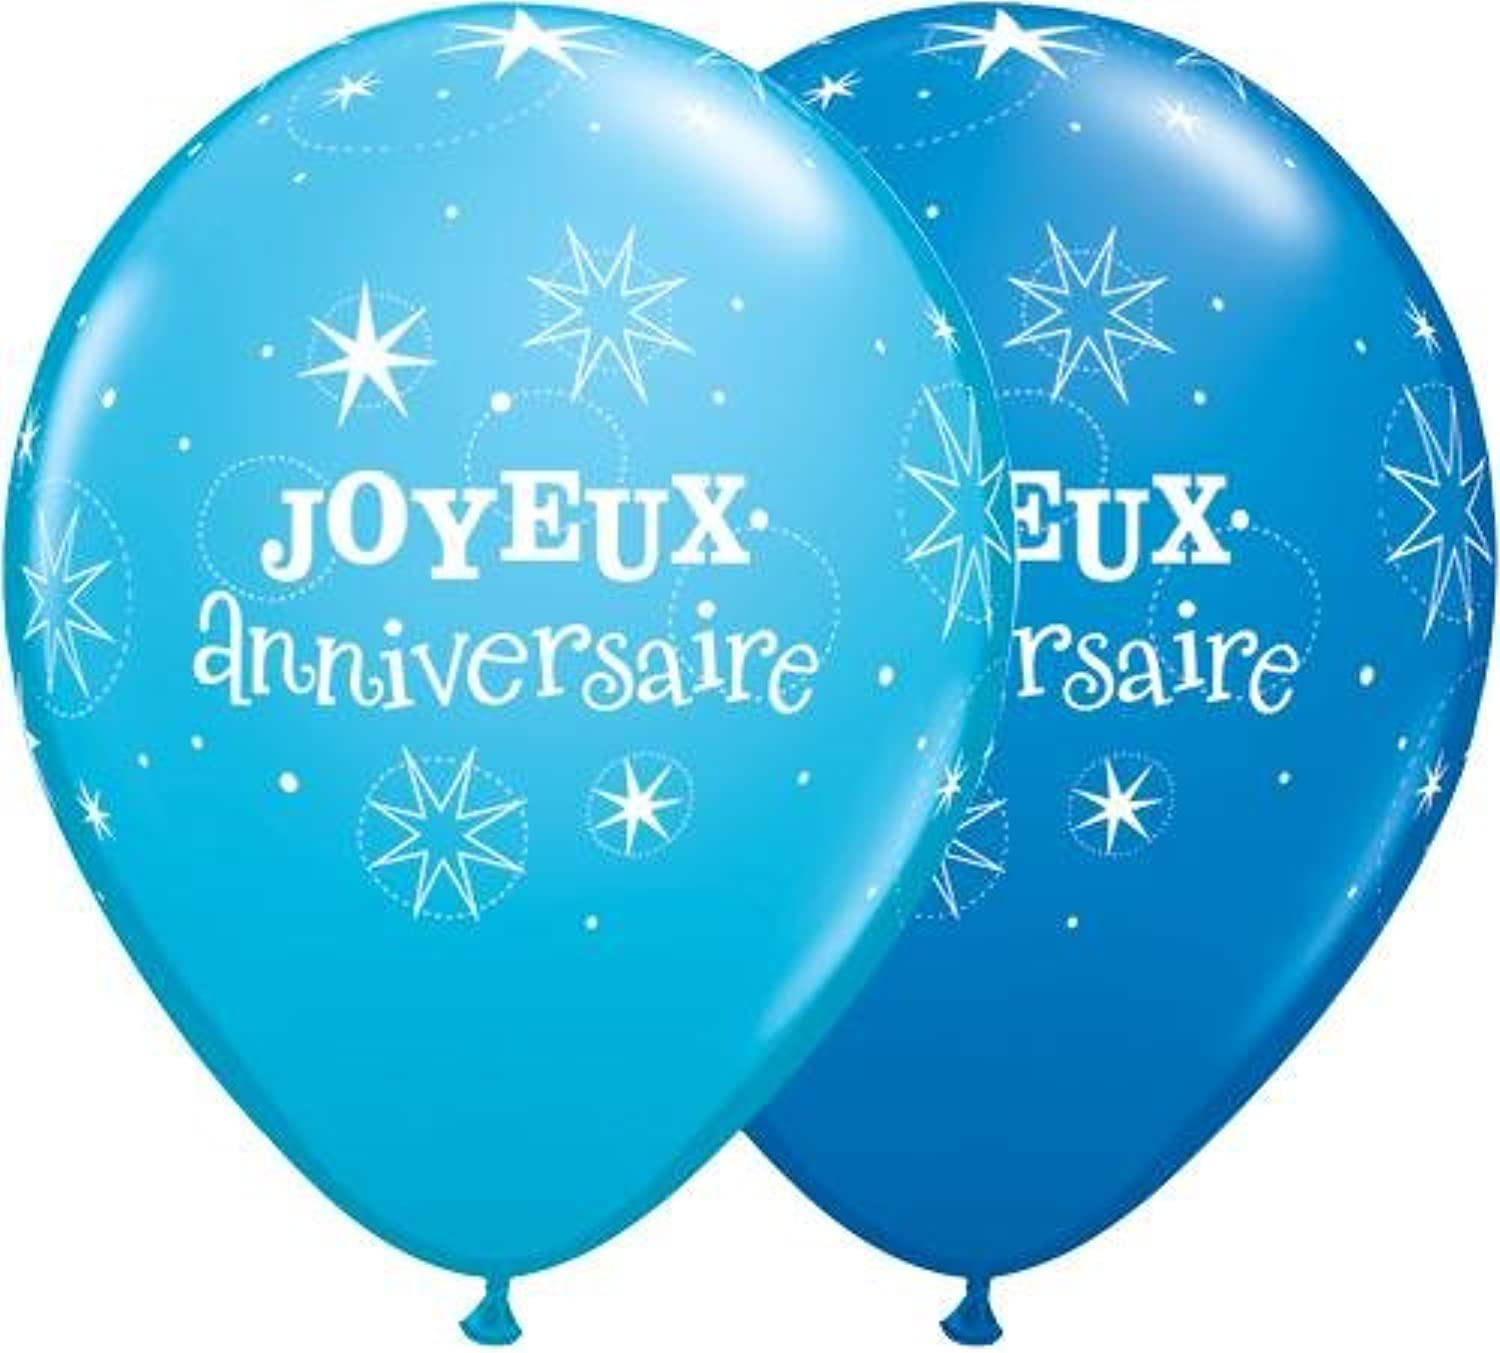 Qualatex 115.051,8cm Joyeux Anniversaire brillante rossoondo blu scuro Robin Egg ptuttioncini in lattice, 27,9cm, pezzi